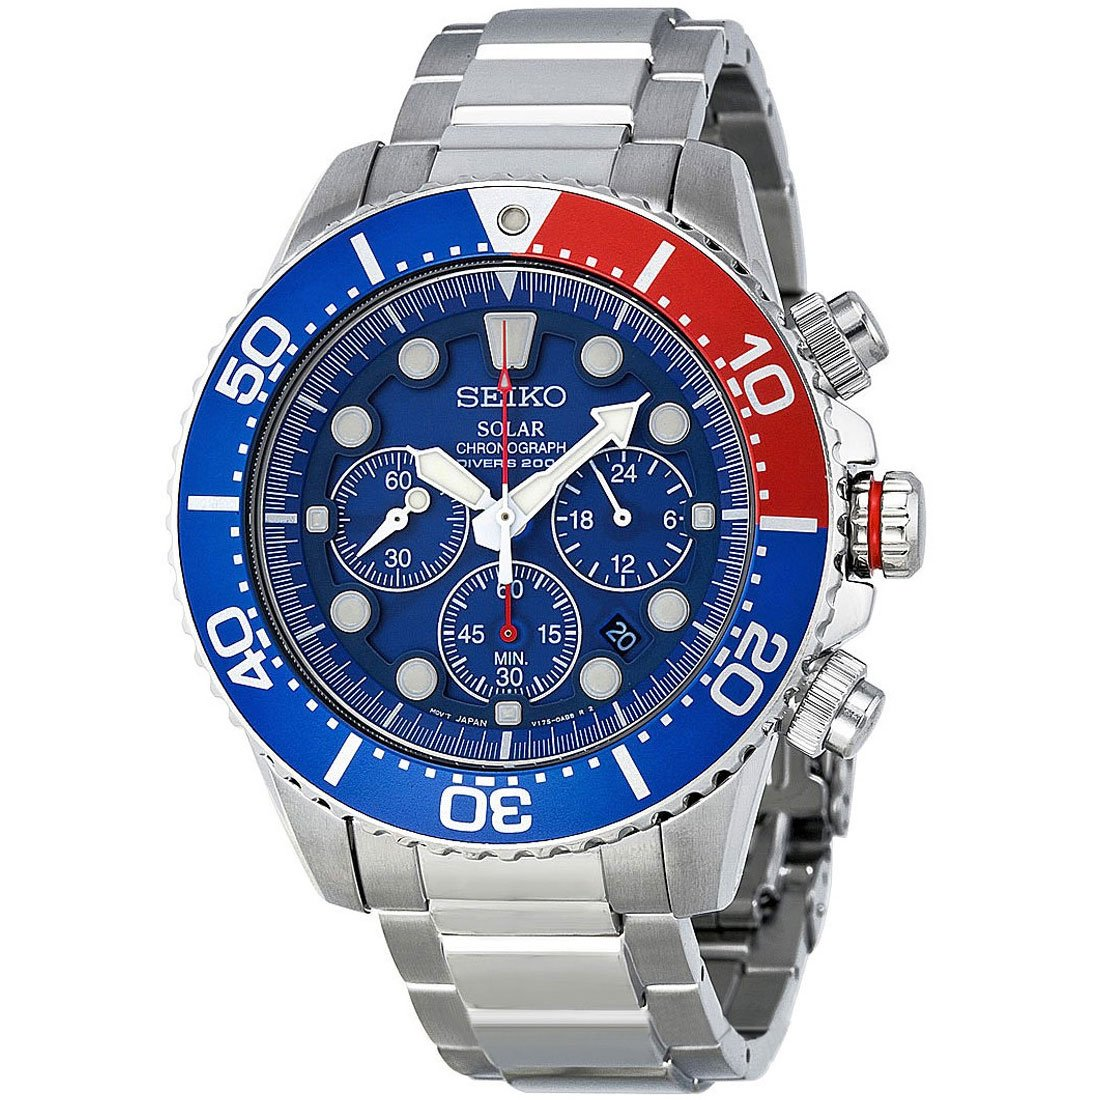 Amazon.com  Seiko Men s SSC019 Solar Diver Chronograph Watch  Seiko  Watches 3061851a8c